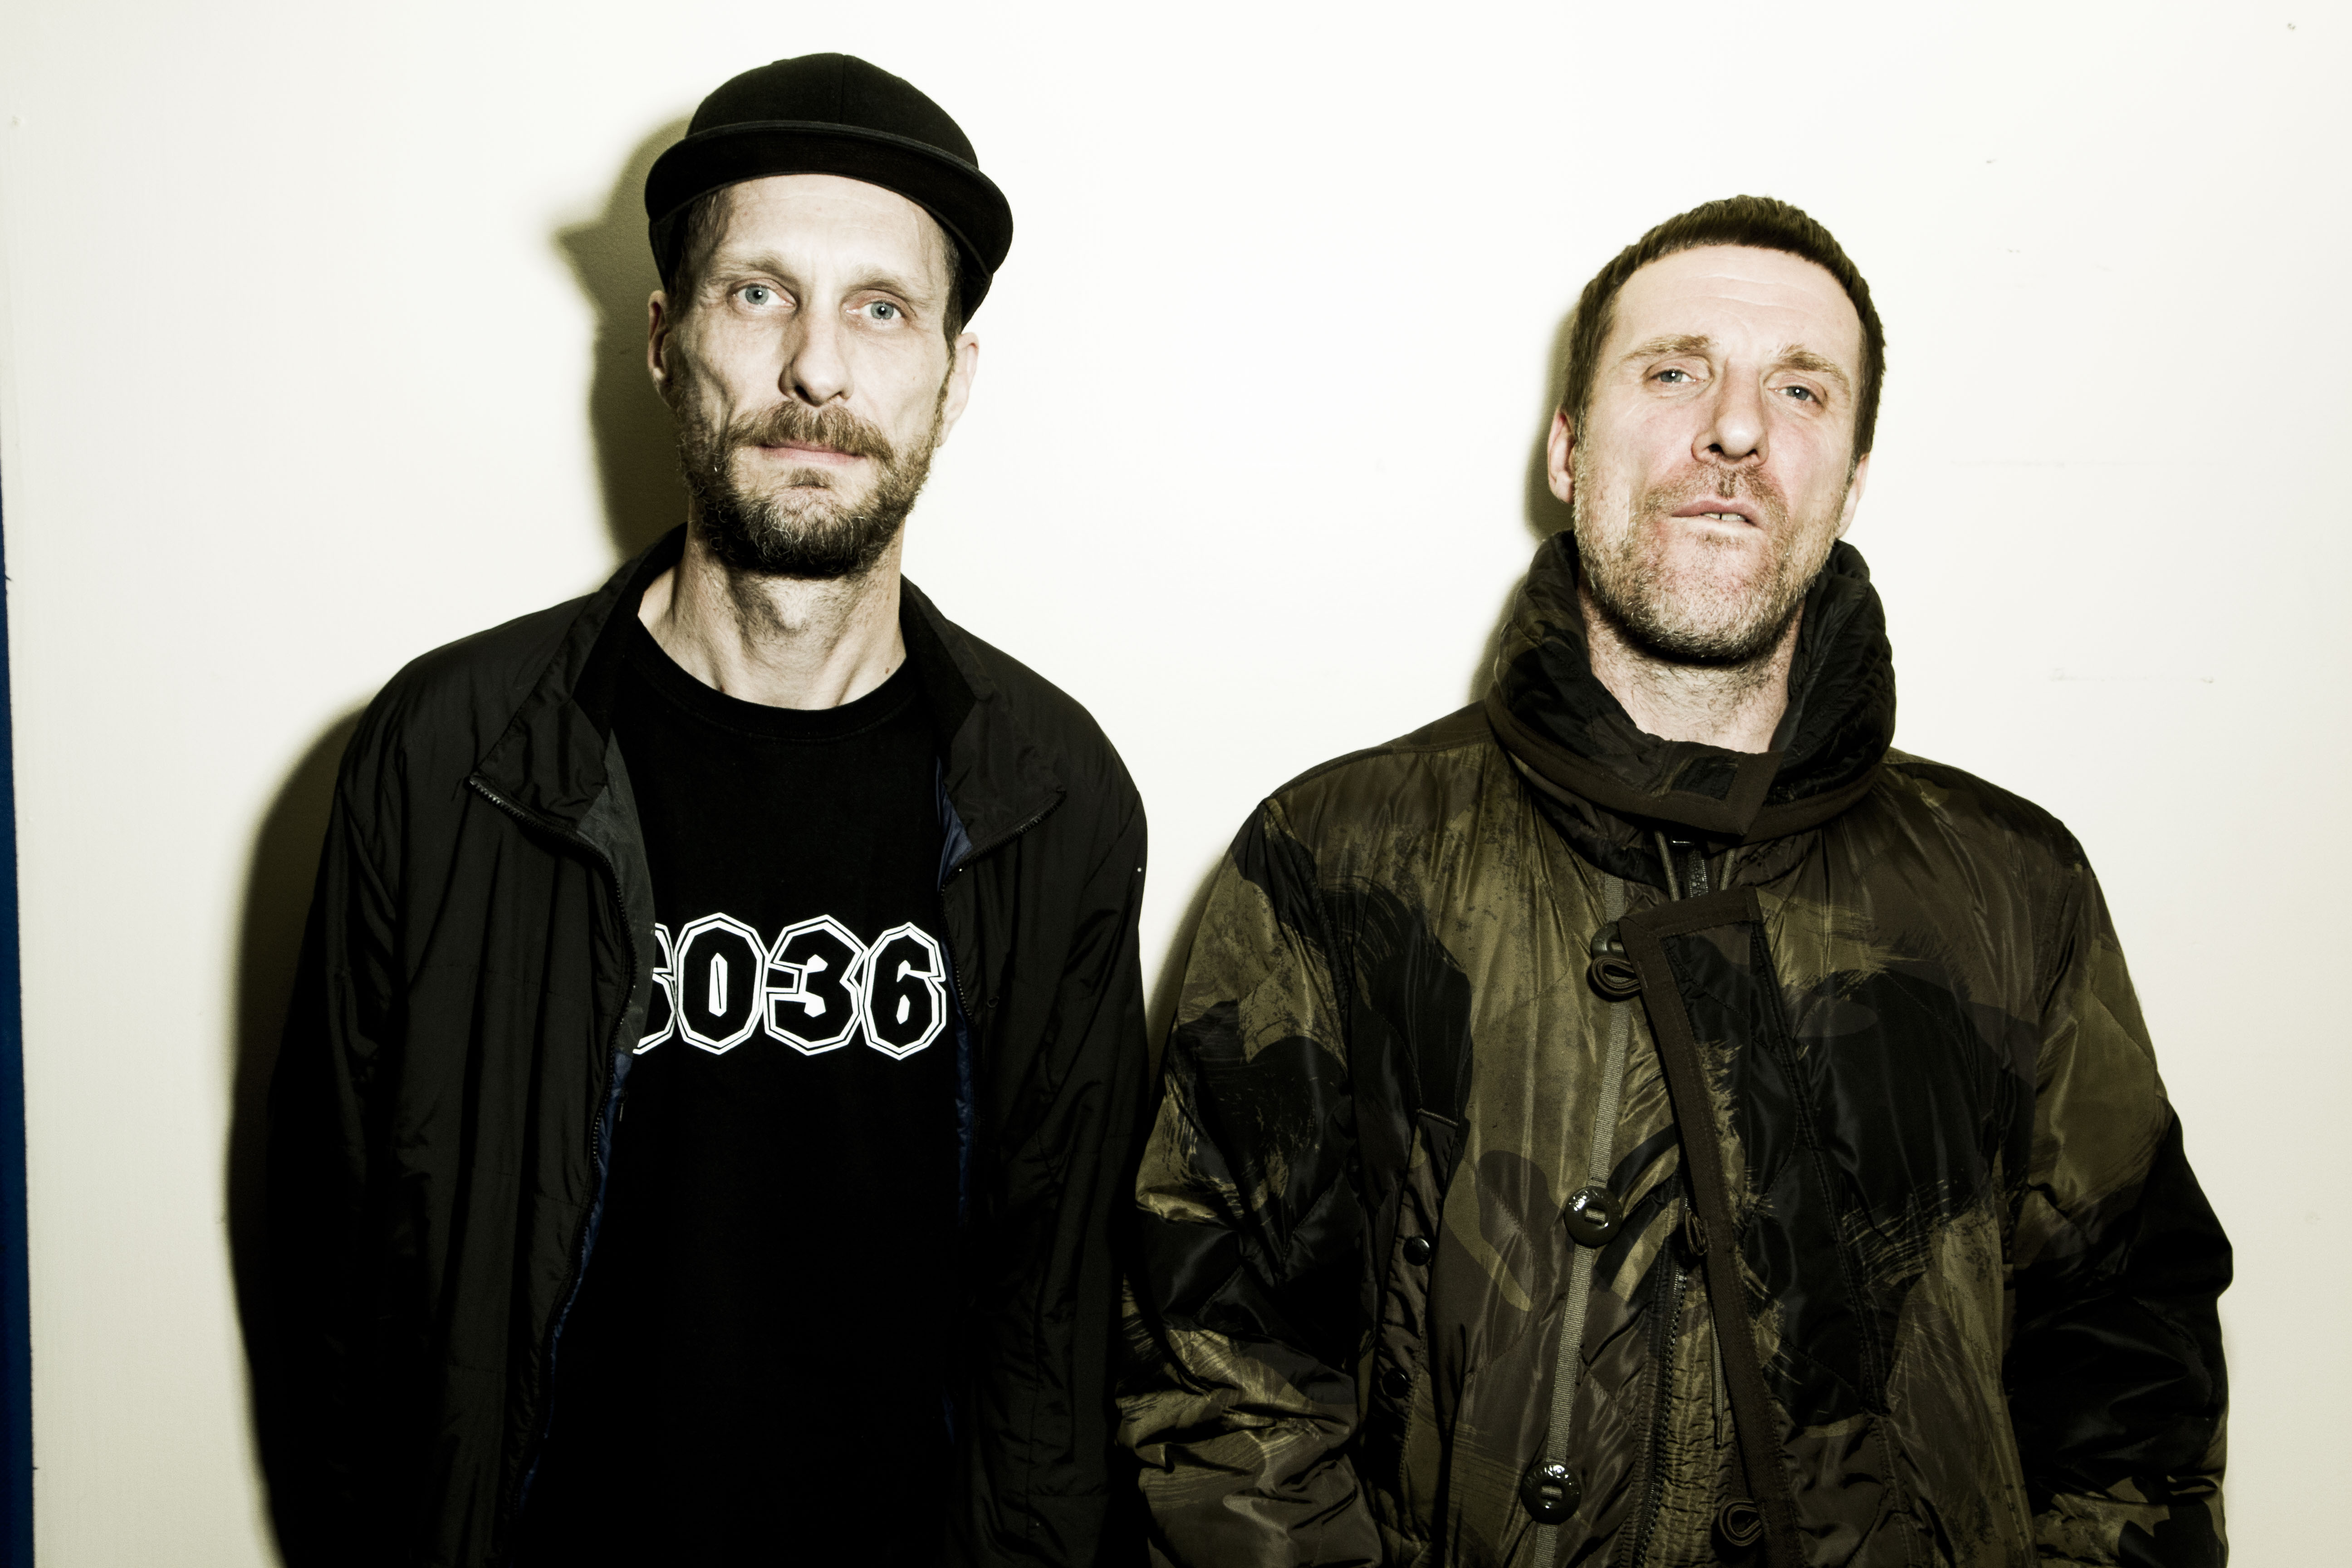 INTERVIEW: JASON – SLEAFORD MODS